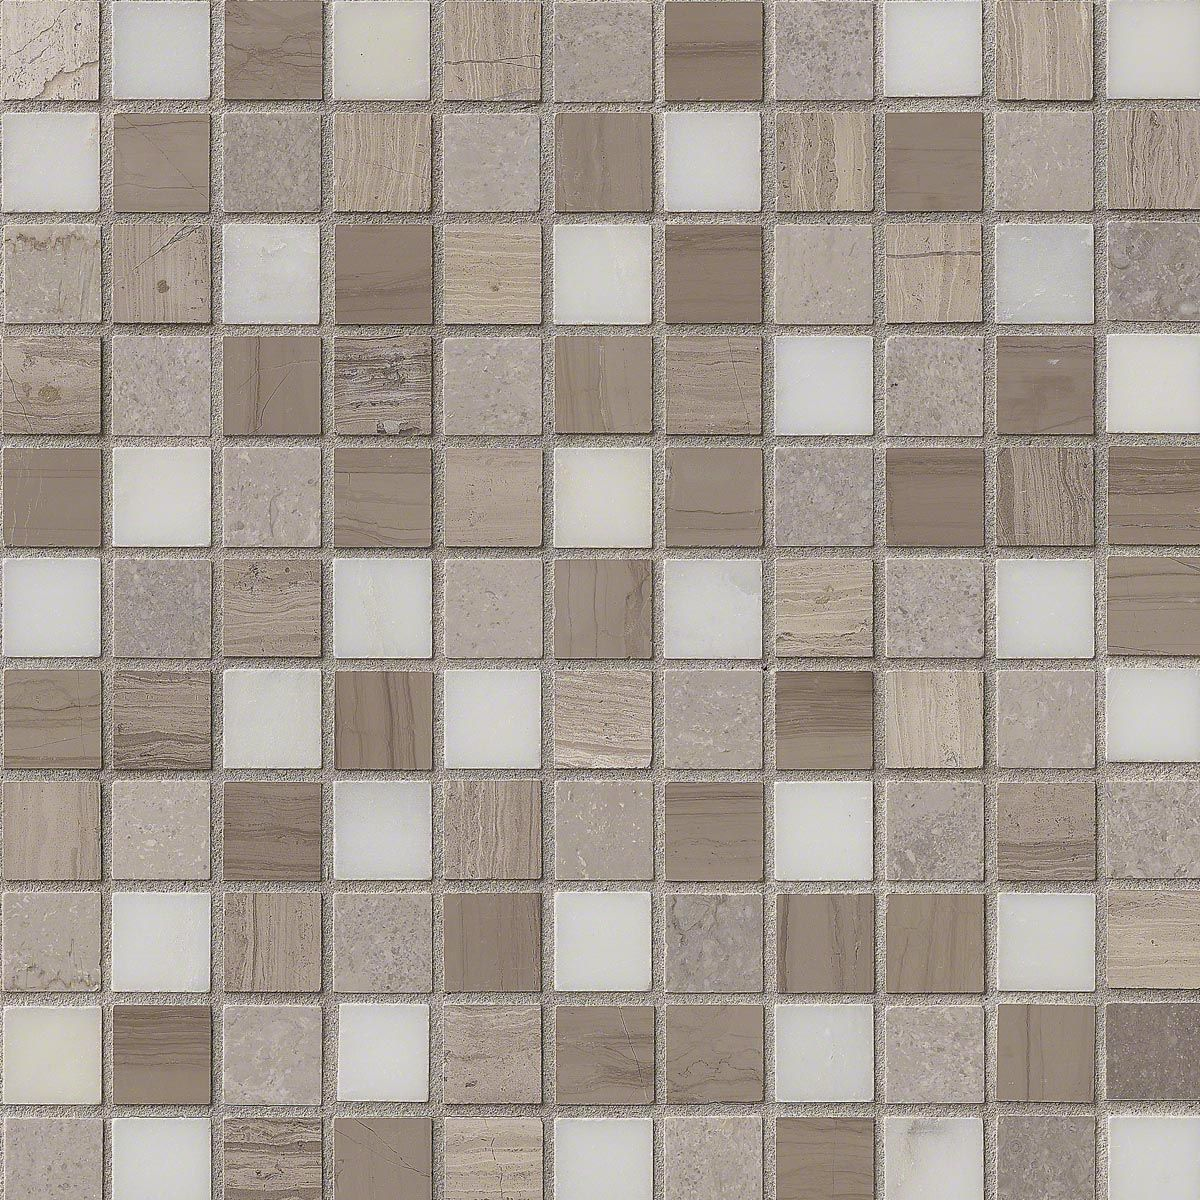 Alya tile 1x1arctic white tundra gray mix honed marble mosaic tile this beautiful arctic storm mosaic sheet marble tile is used in flooring countertops and backsplash doublecrazyfo Gallery